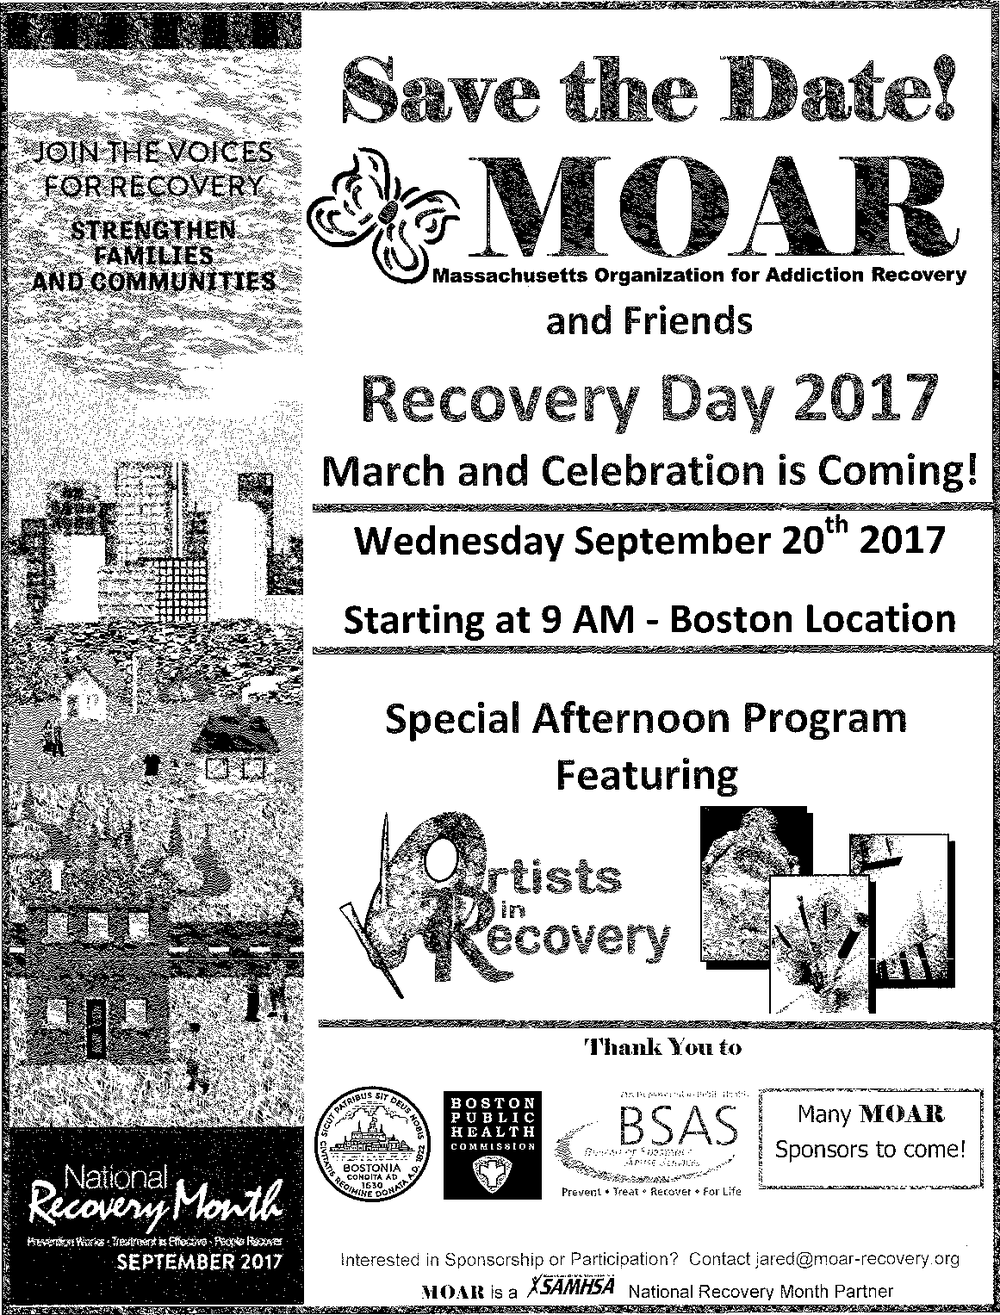 Recovery Day 2017 - The Massachusetts Organization for Addiction Recovery will be hosting a special afternoon Recovery March and Celebration on September 20, 2017. Mark your calendars! For more information visit: www.moar-recovery.org